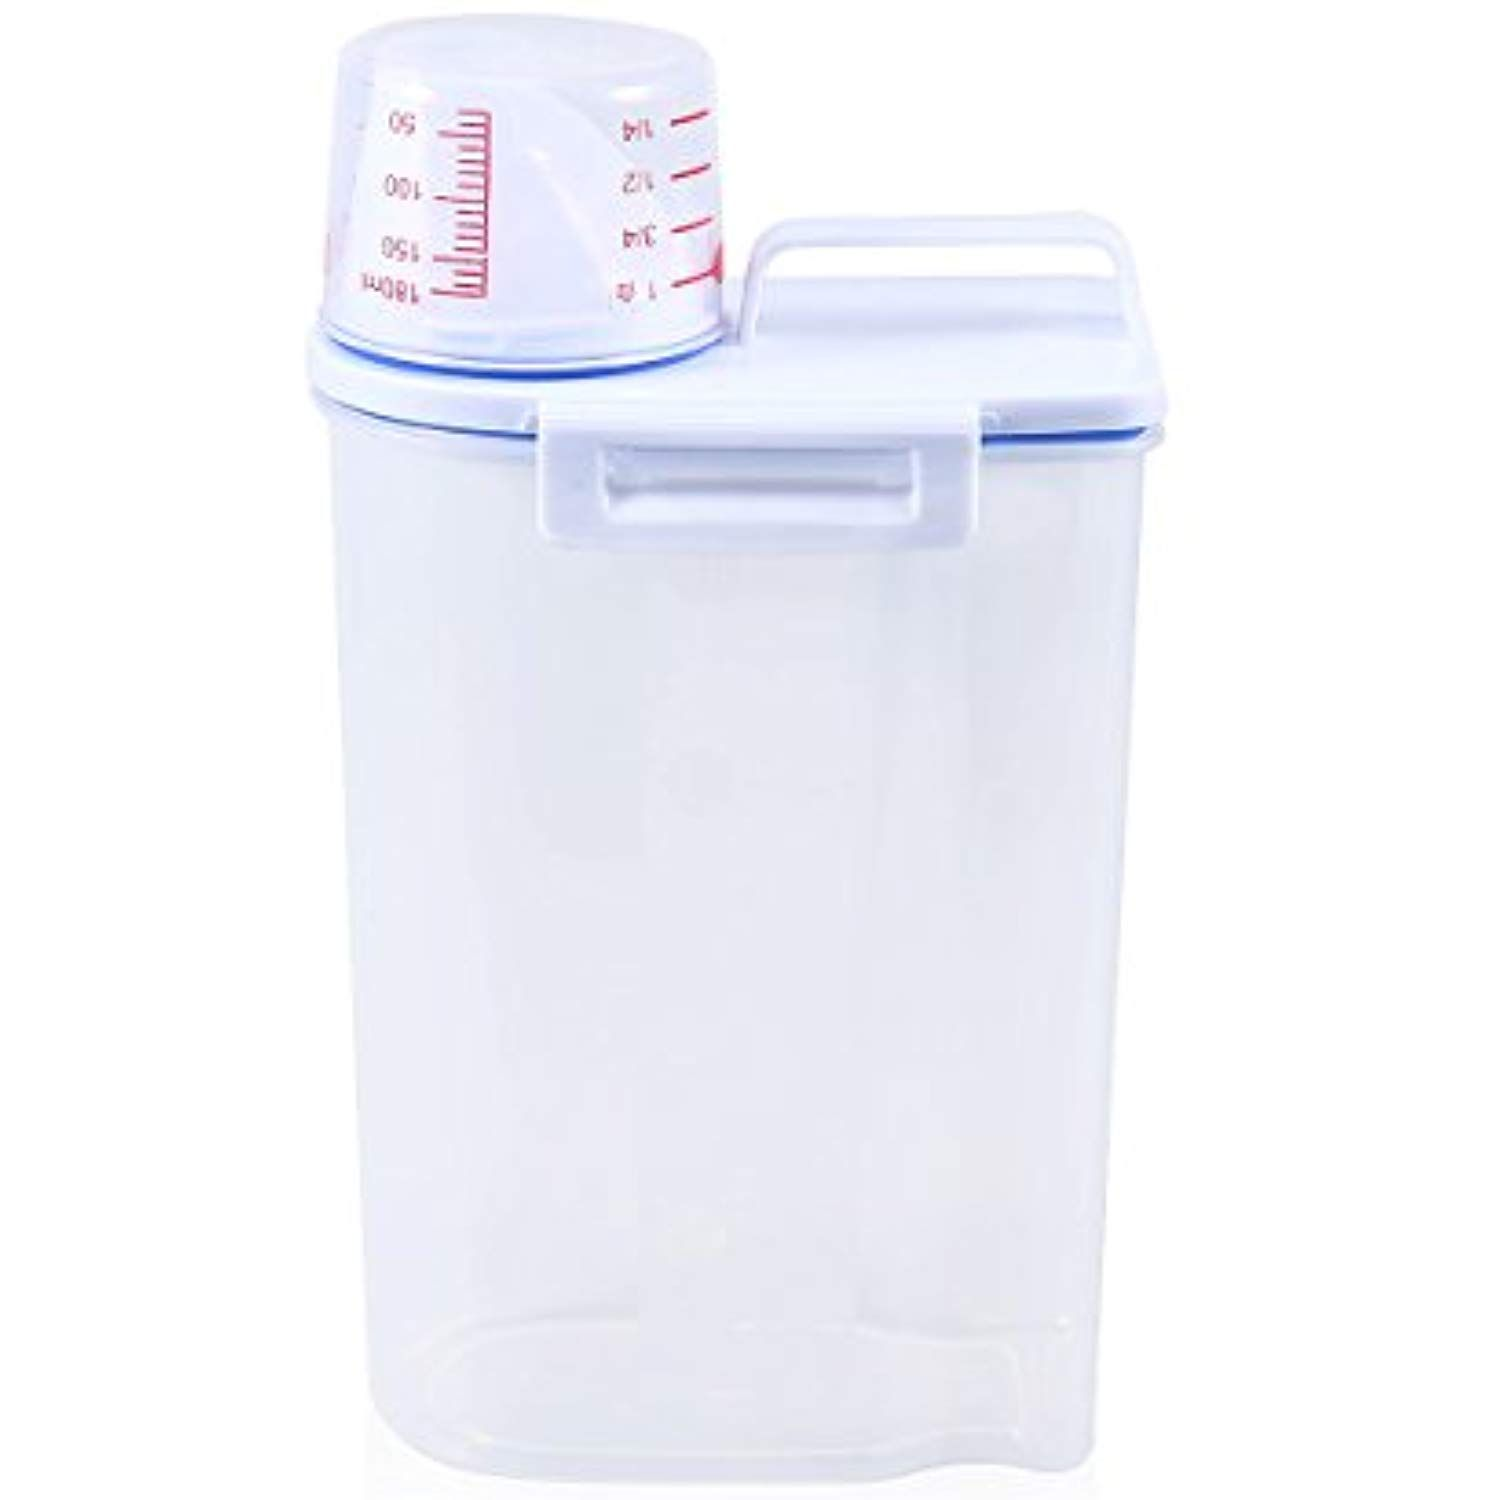 Ueetek Pet Food Container Dog Food Storage Containers Pet Dry Food Dispenser With Graduated Cup Dog Food Storage